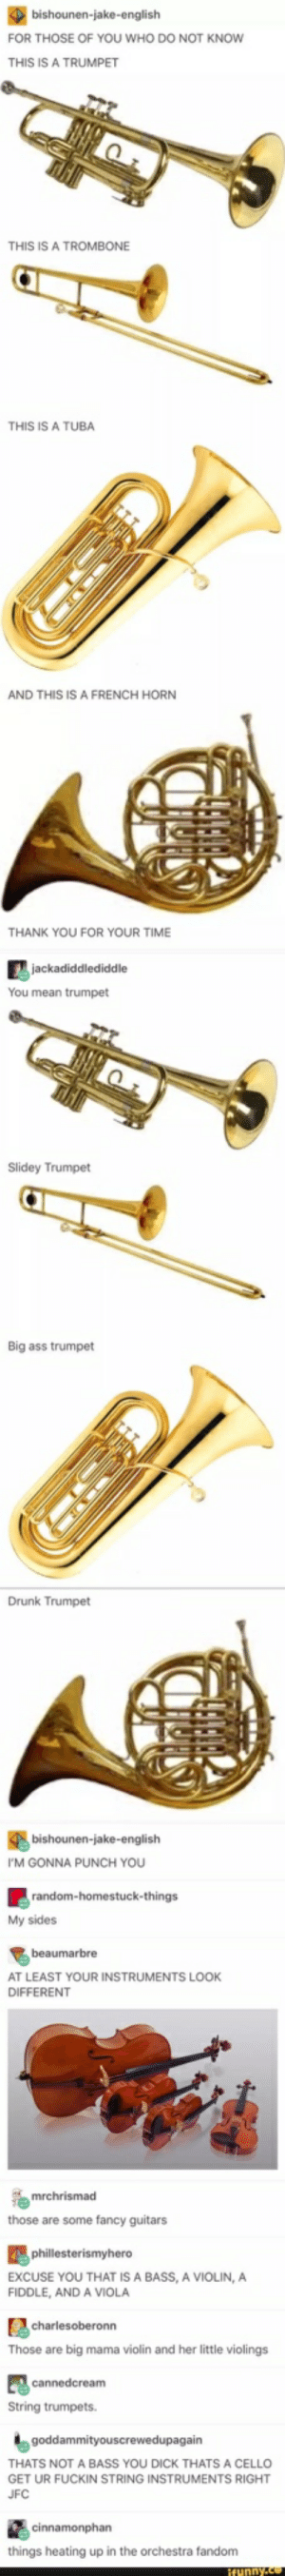 Ass, Drunk, and Thank You: bishounen-jake-english  FOR THOSE OF YOU WHO DO NOT KNOW  THIS IS A TRUMPET  THIS IS A TROMBONE  THIS IS A TUBA  AND THIS IS A FRENCH HORN  THANK YOU FOR YOUR TIME  jackadiddlediddle  Slidey Trumpet  Big ass trumpet  Drunk Trumpet  bishounen-jake-english  I'M GONNA PUNCH YOU  random-homestuck-things  My sides  beaumarbre  AT LEAST YOUR INSTRUMENTS LOOK  DIFFERENT  mrchrismad  those are some fancy guitars  phillesterismyhero  EXCUSE YOU THAT IS A BASS, A VIOLIN, A  FIDDLE, AND A VIOLA  charlesoberonn  Those are big mama violin and her little violings  cannedcream  String trumpets.  goddammityouscrewedupagain  THATS NOT A BASS YOU DICK THATS A CELLO  GET UR FUCKIN STRING INSTRUMENTS RIGHT  JFC  cinnamonphan  things heating up in the orchestra fandom